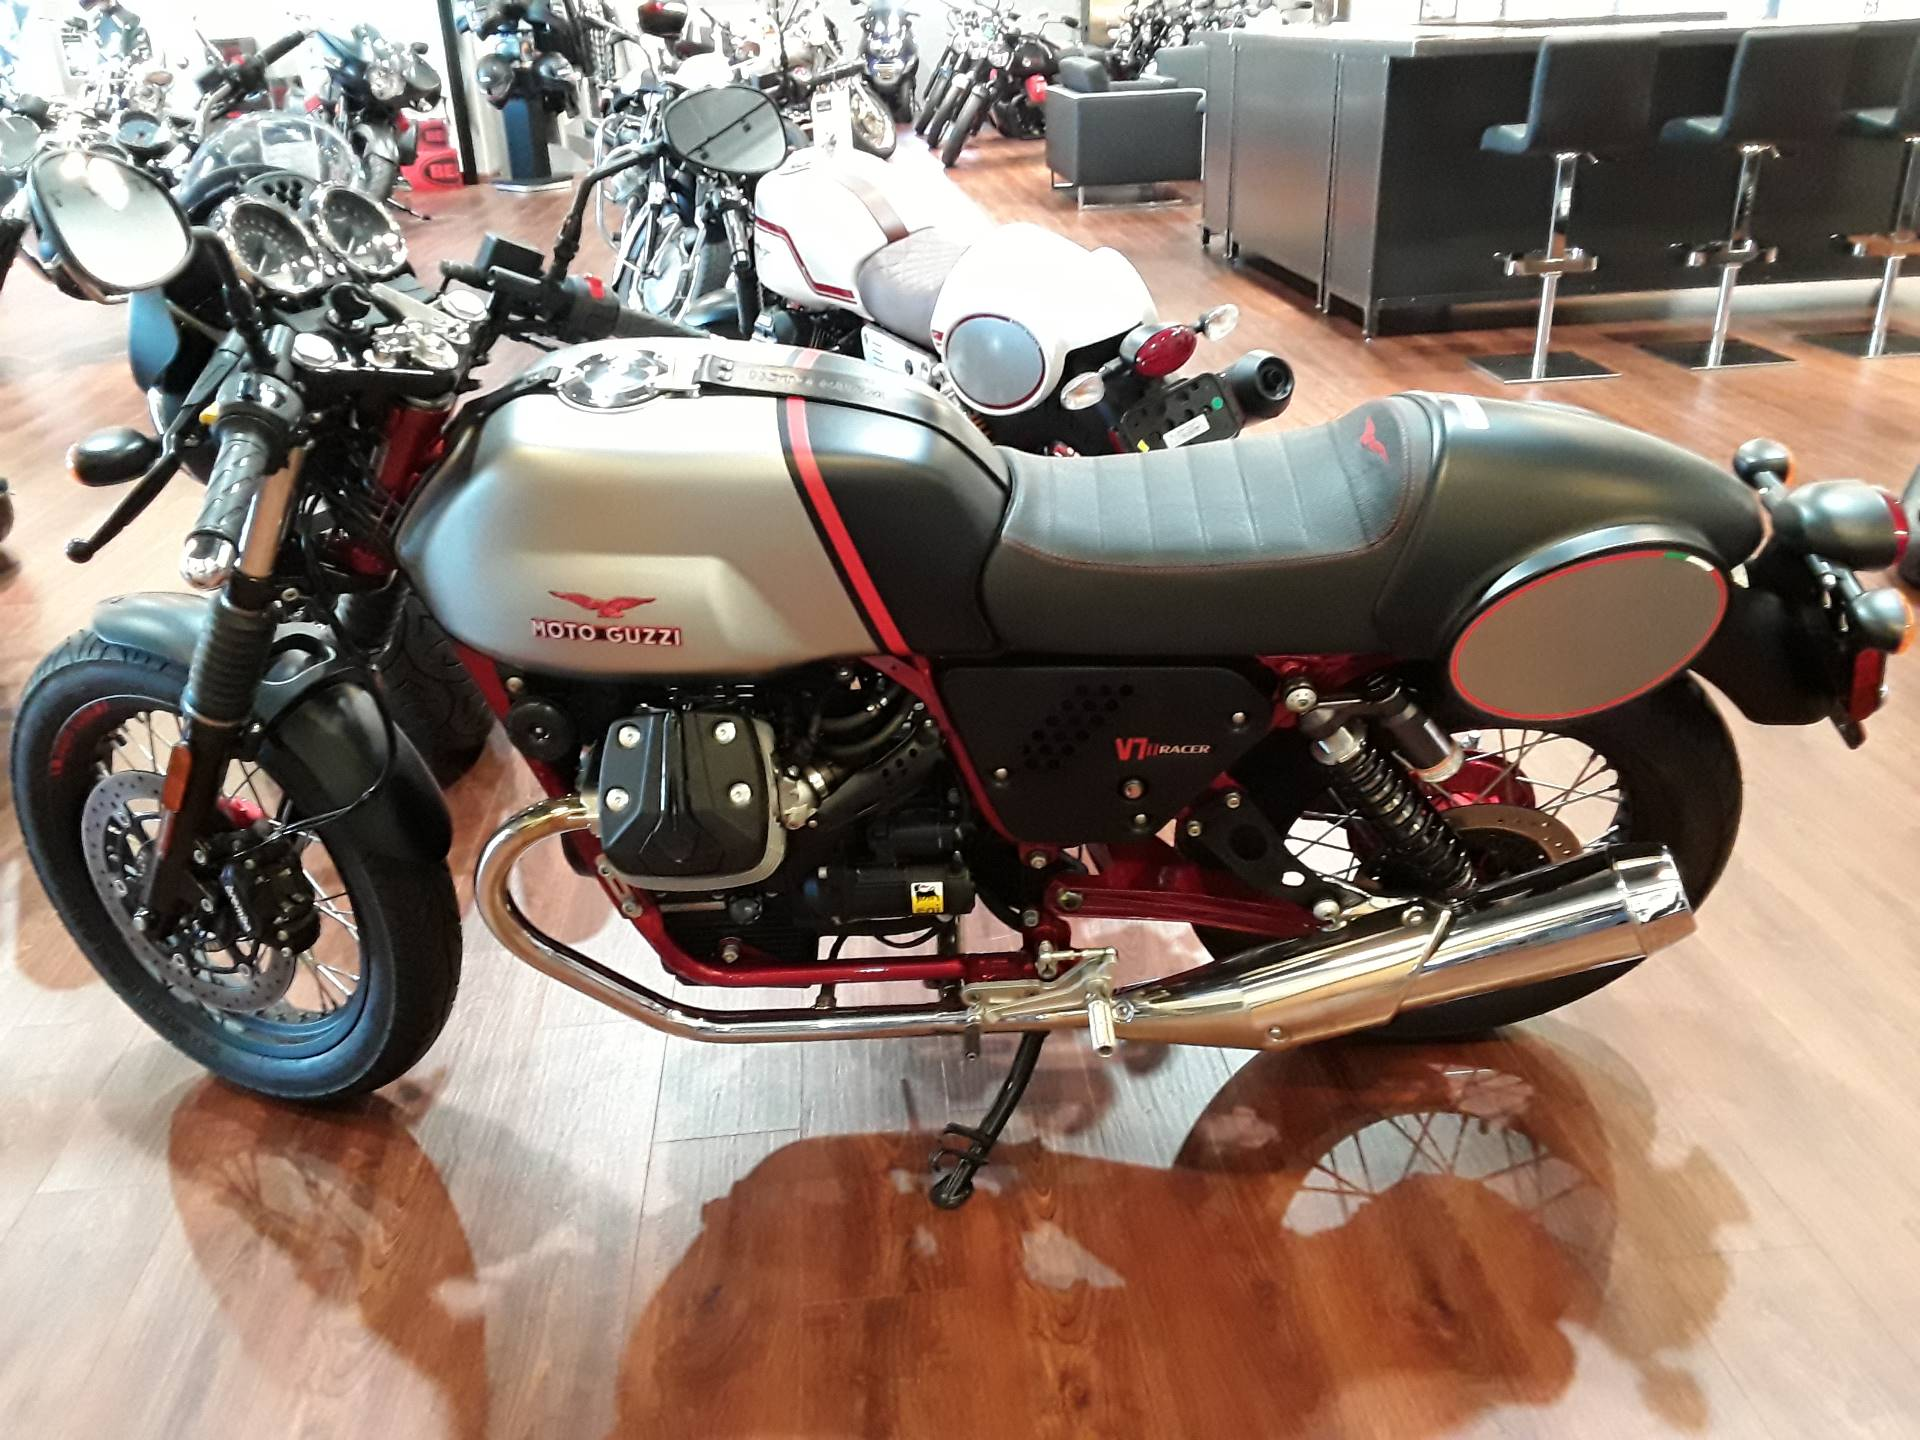 2016 Moto Guzzi V7 II Racer ABS in West Chester, Pennsylvania - Photo 5